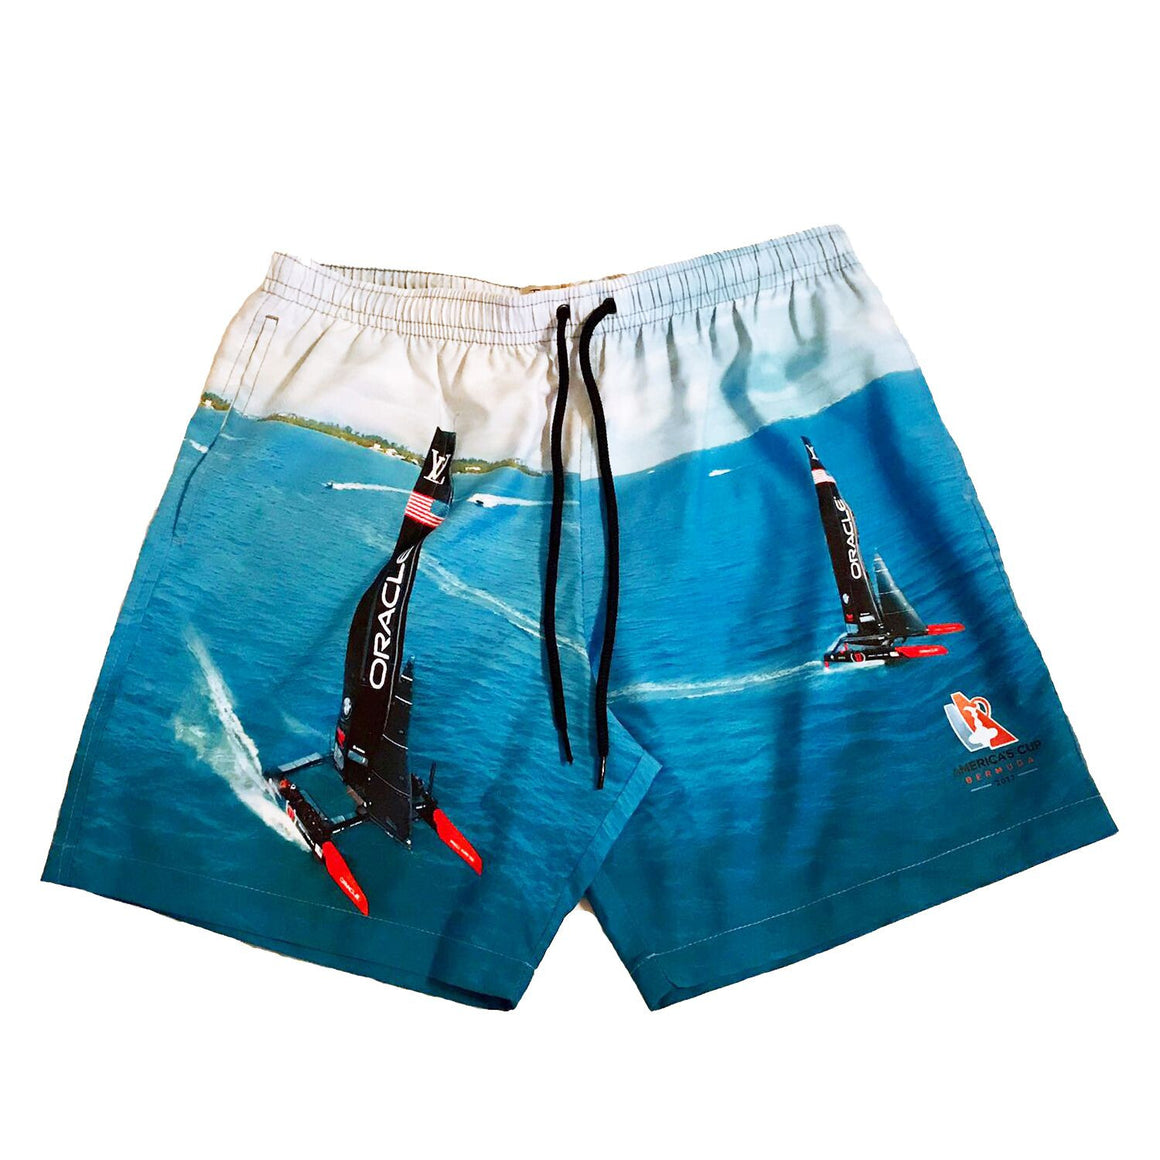 Swim Shorts for Men - America's Cup 'Double Trouble' Print